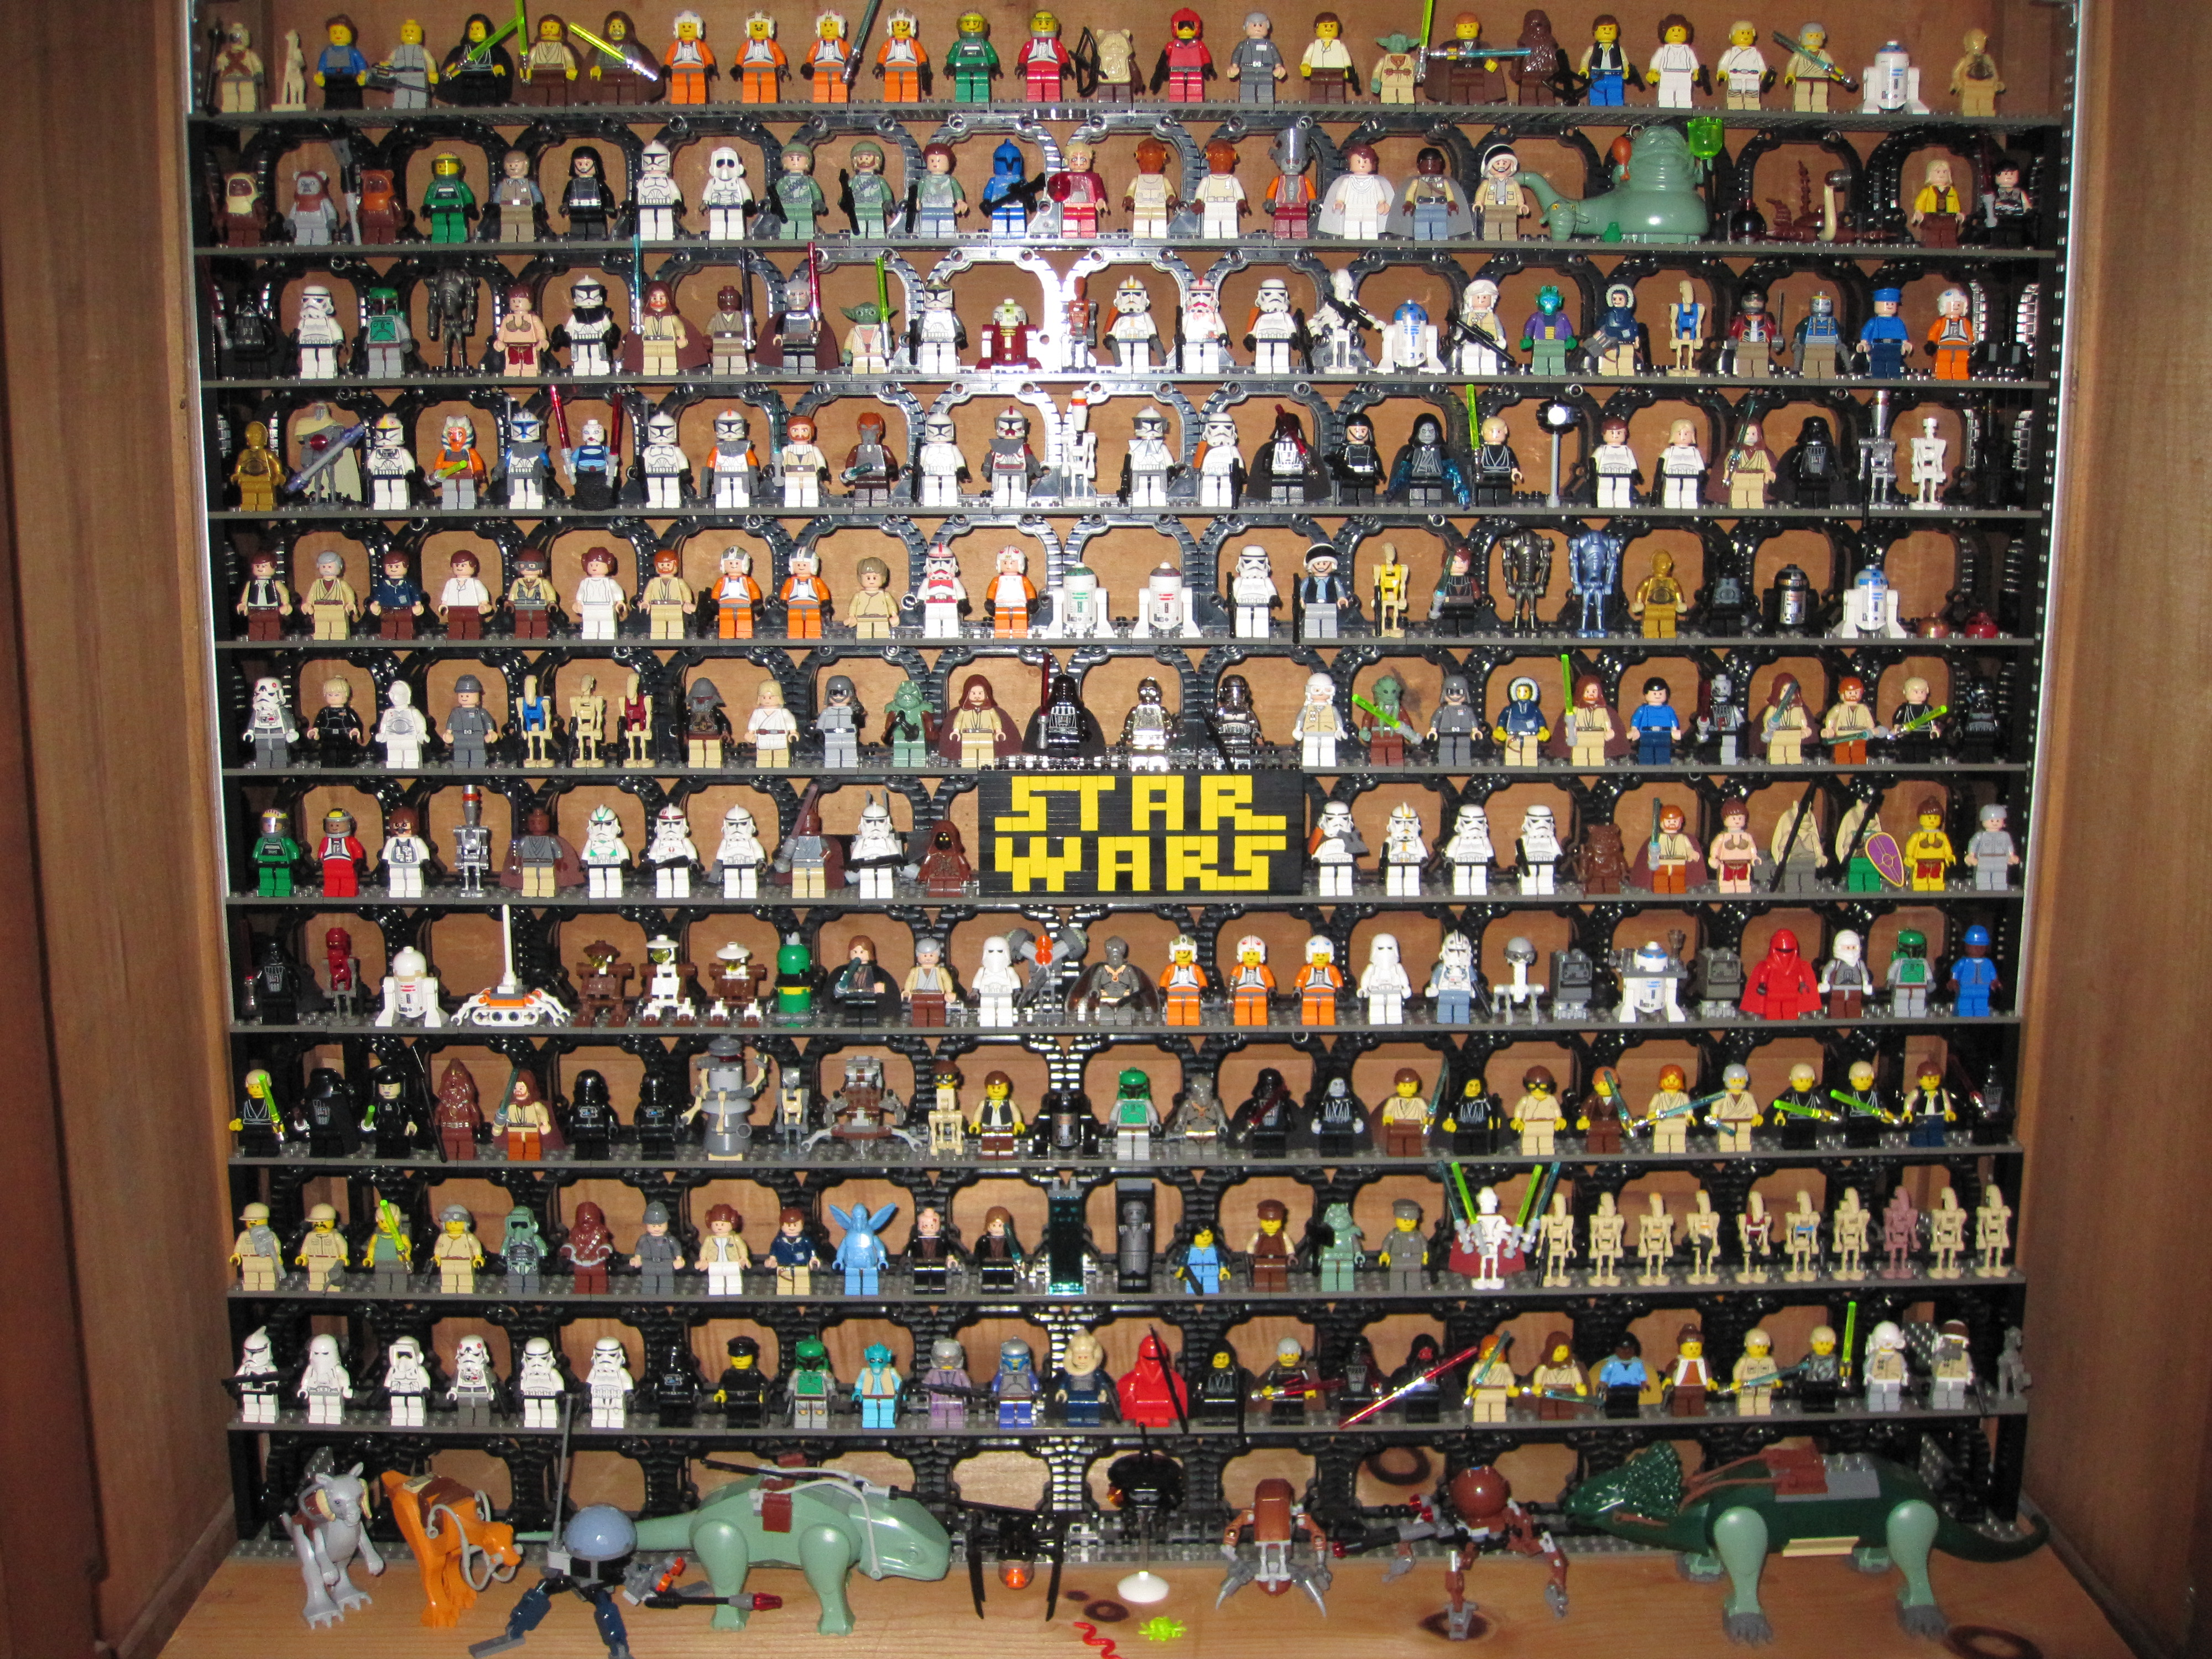 Re star wars minfigures on display